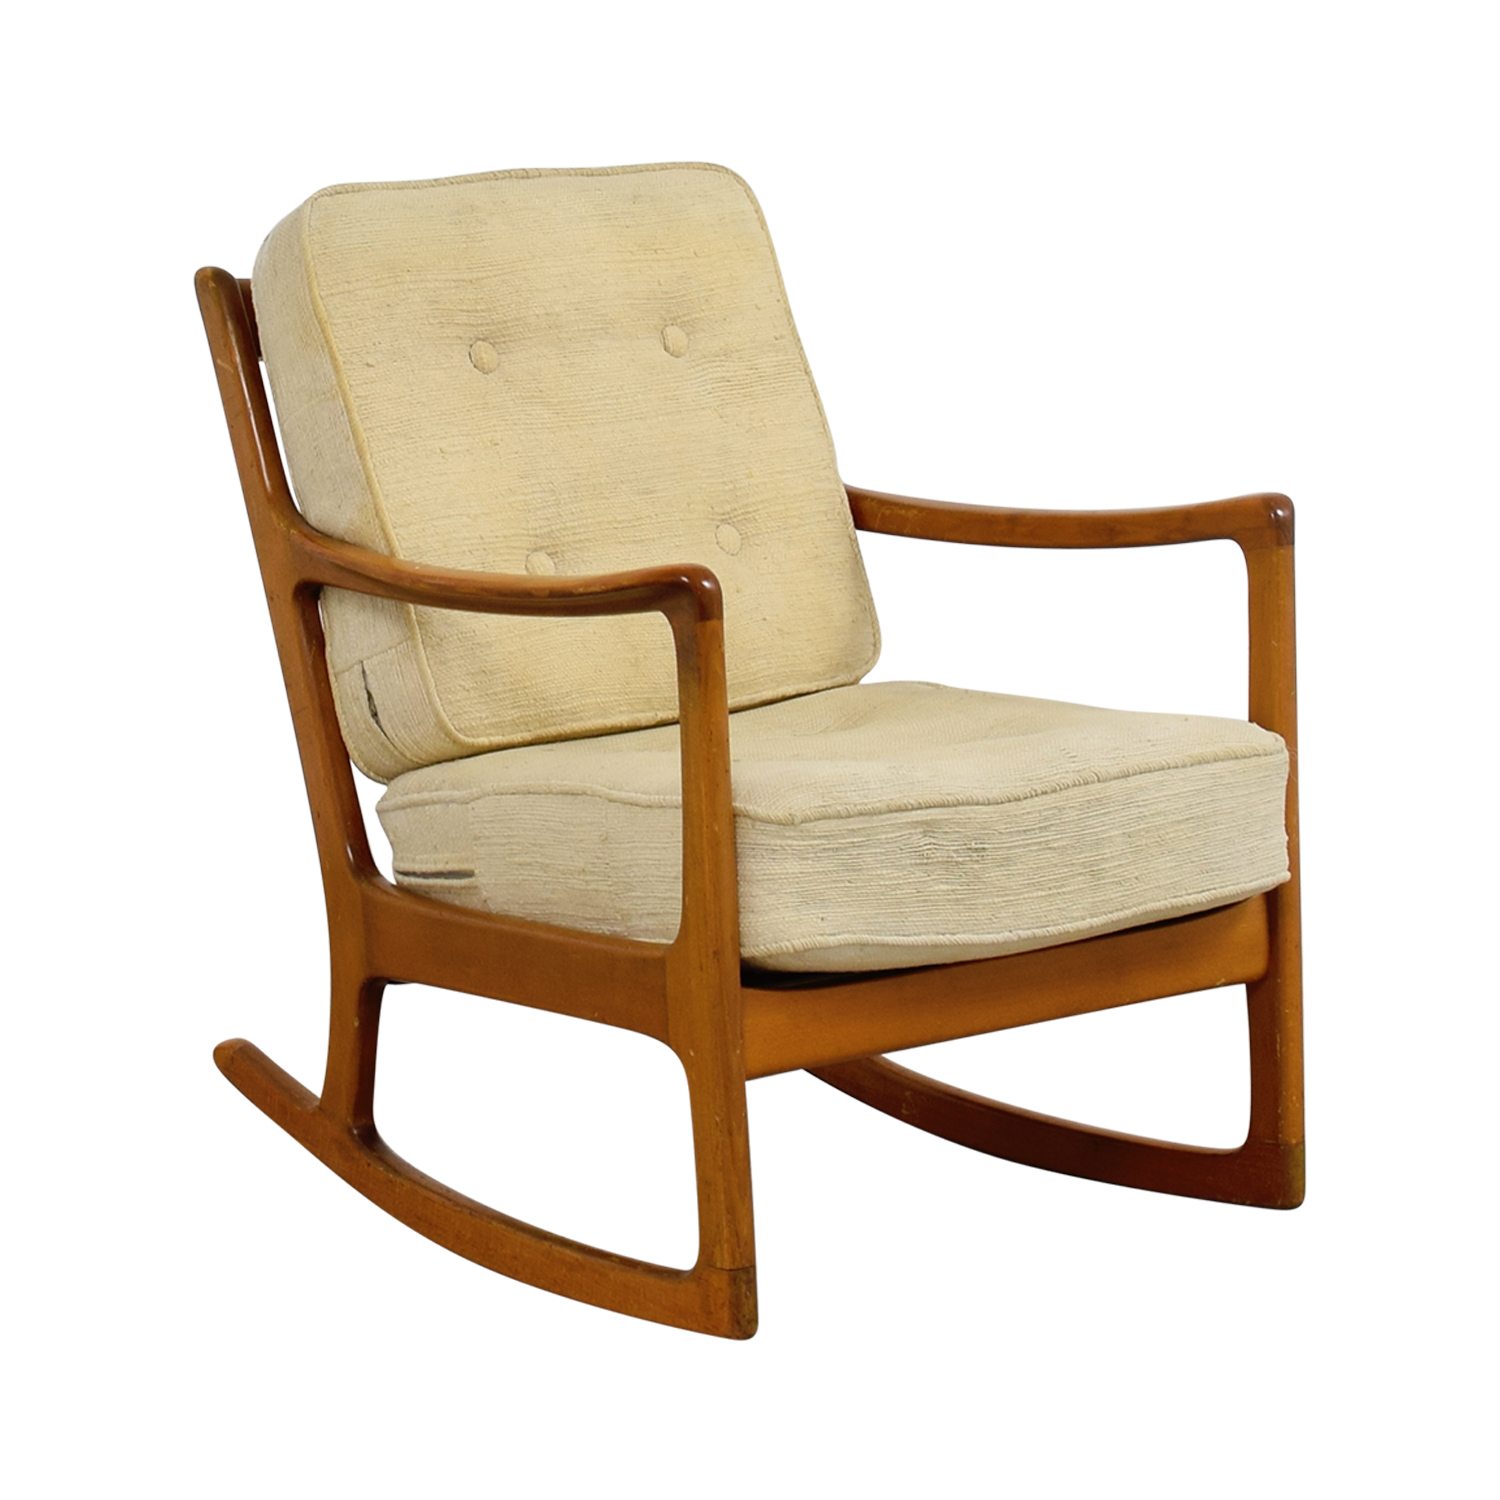 John Stuart Inc Mid Century Danish Beige Teak Rocking Chair Chairs